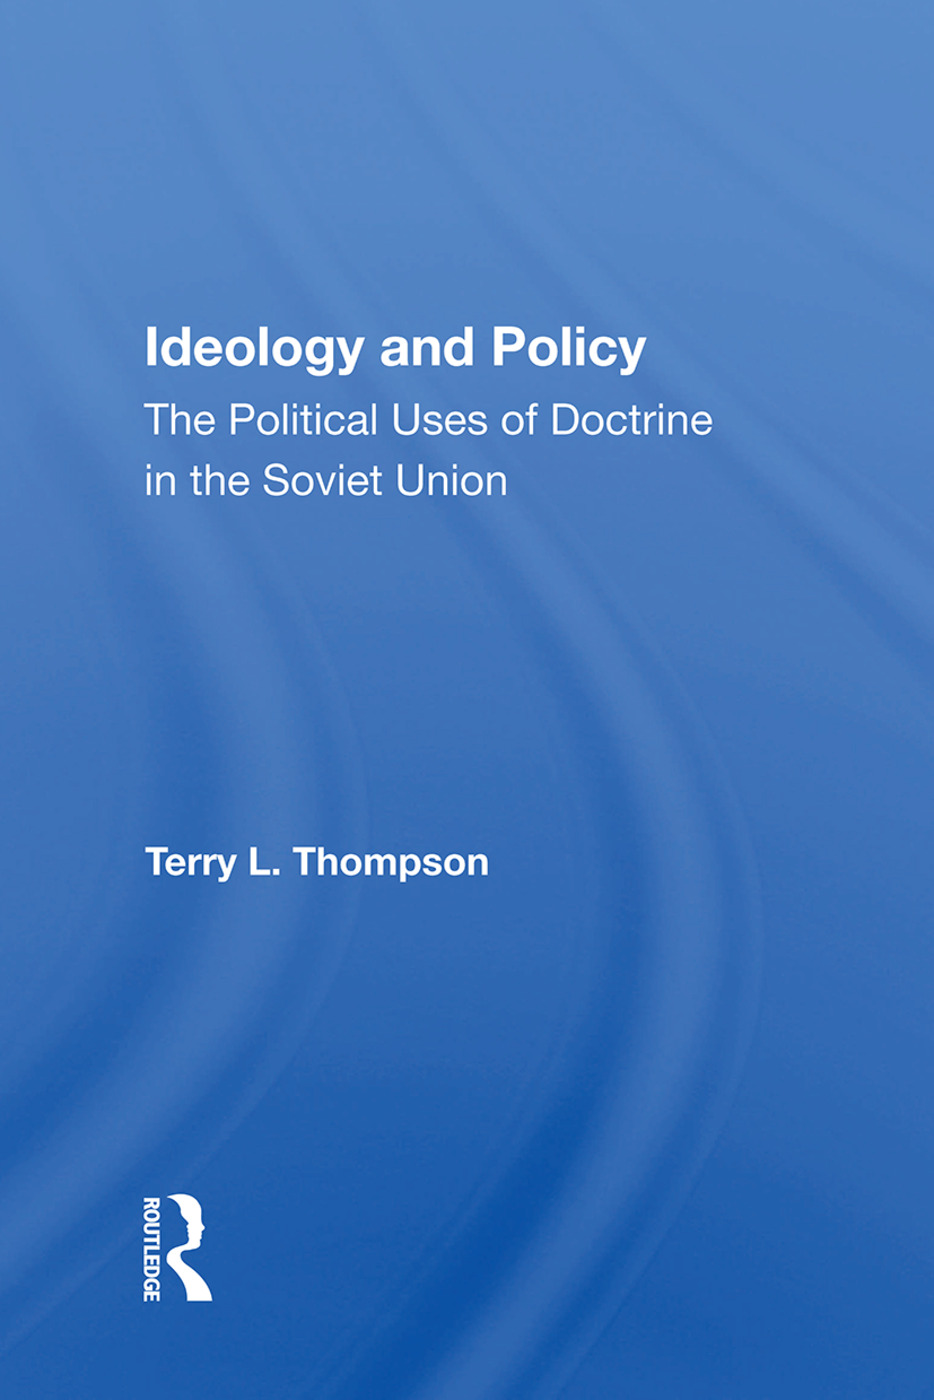 Ideology and Policy